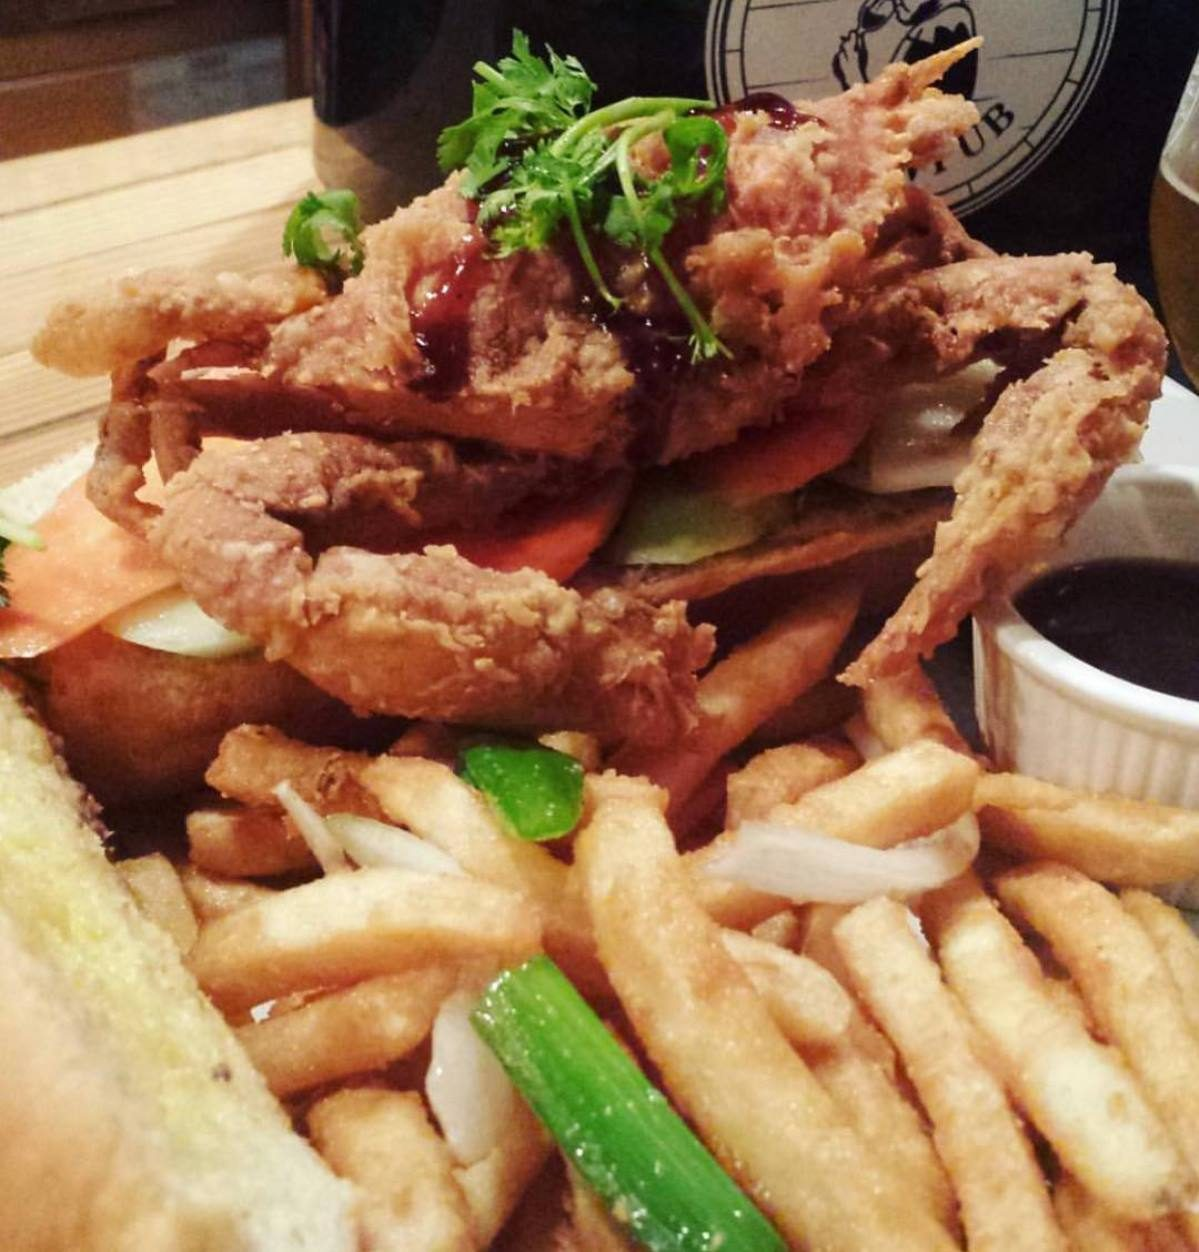 Close-up of fried crab and fries at The Answer